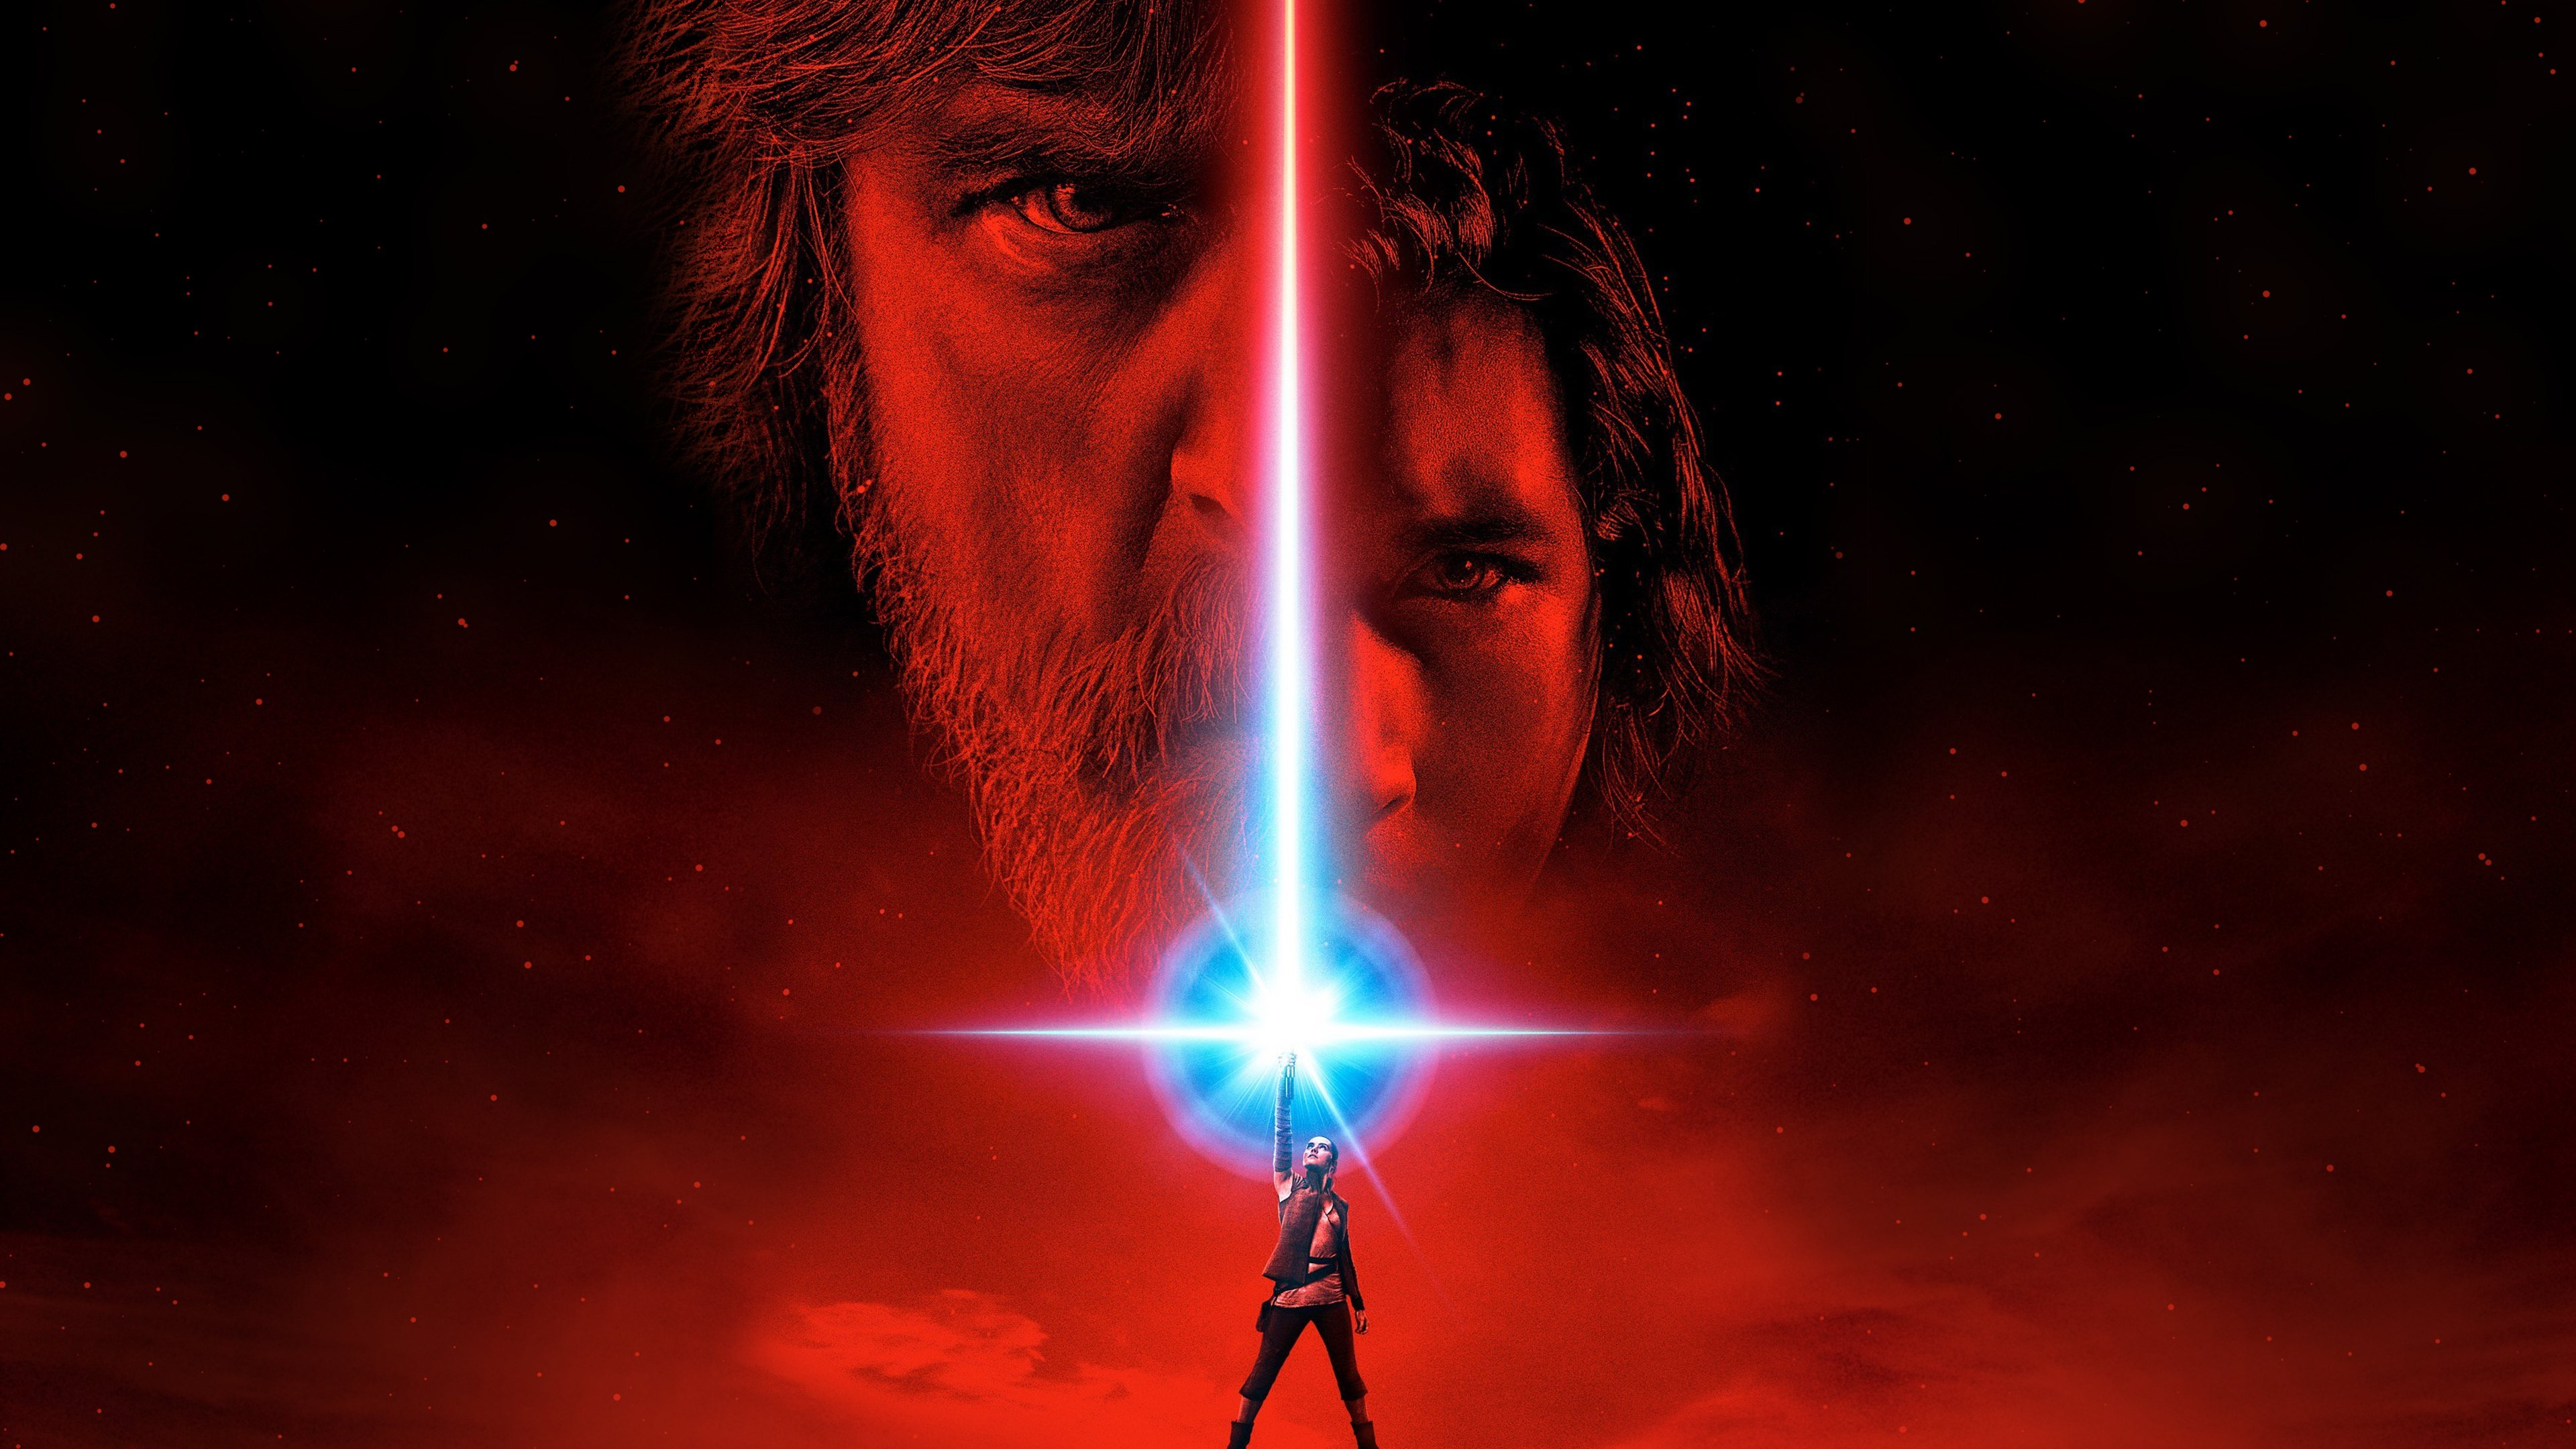 'Star Wars: The Last Jedi' Collects $1Billion Worldwide